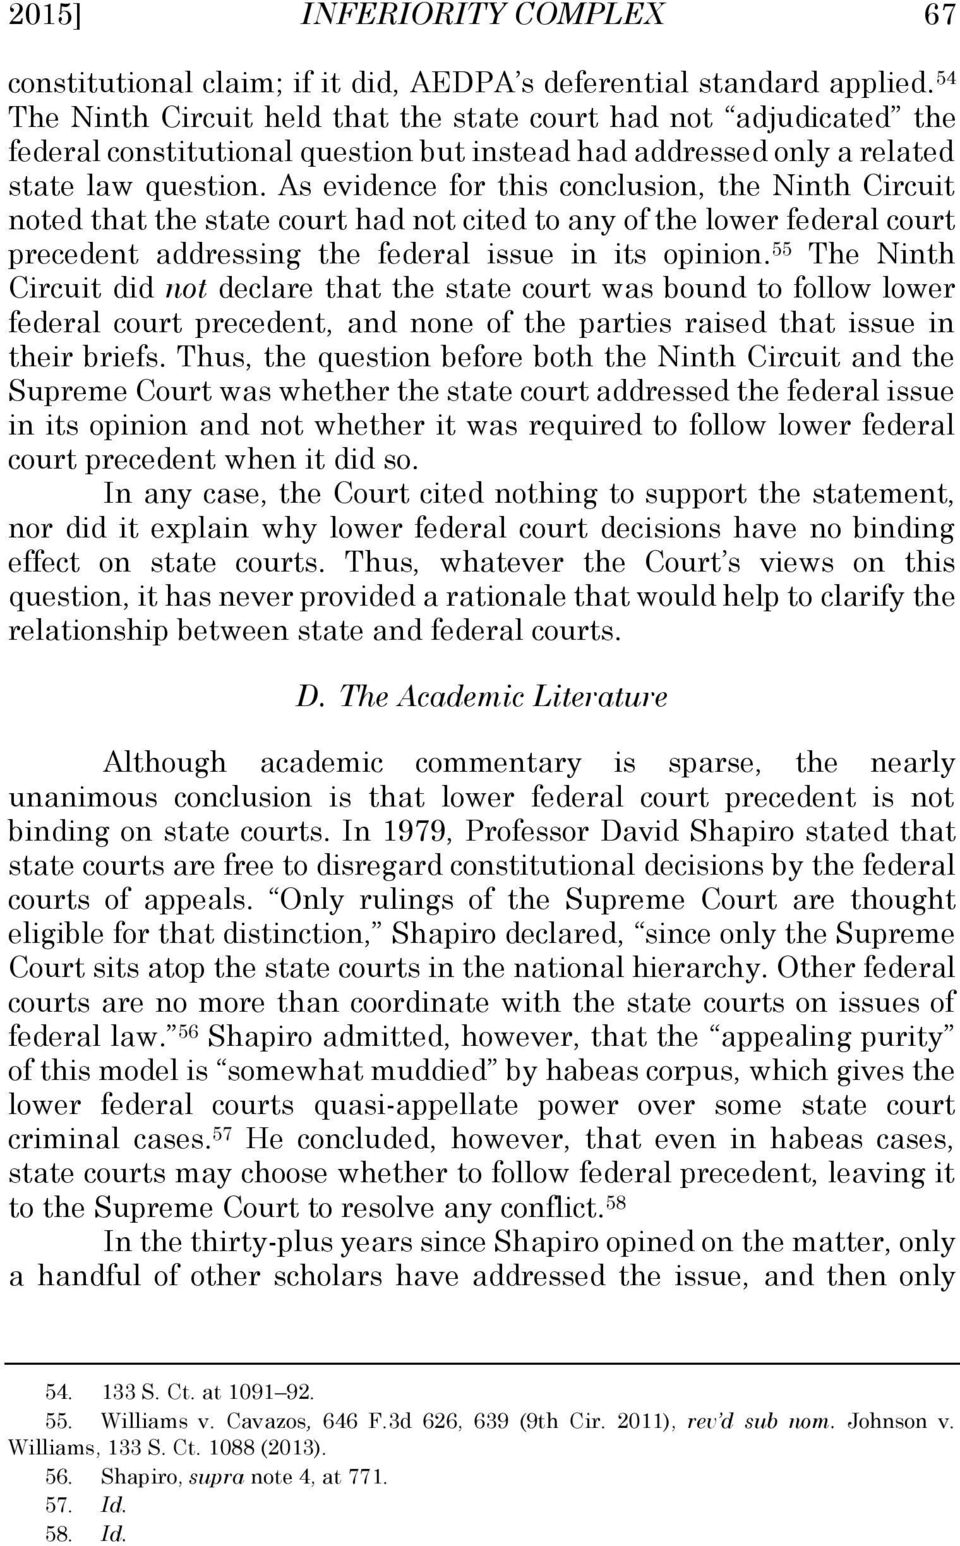 As evidence for this conclusion, the Ninth Circuit noted that the state court had not cited to any of the lower federal court precedent addressing the federal issue in its opinion.